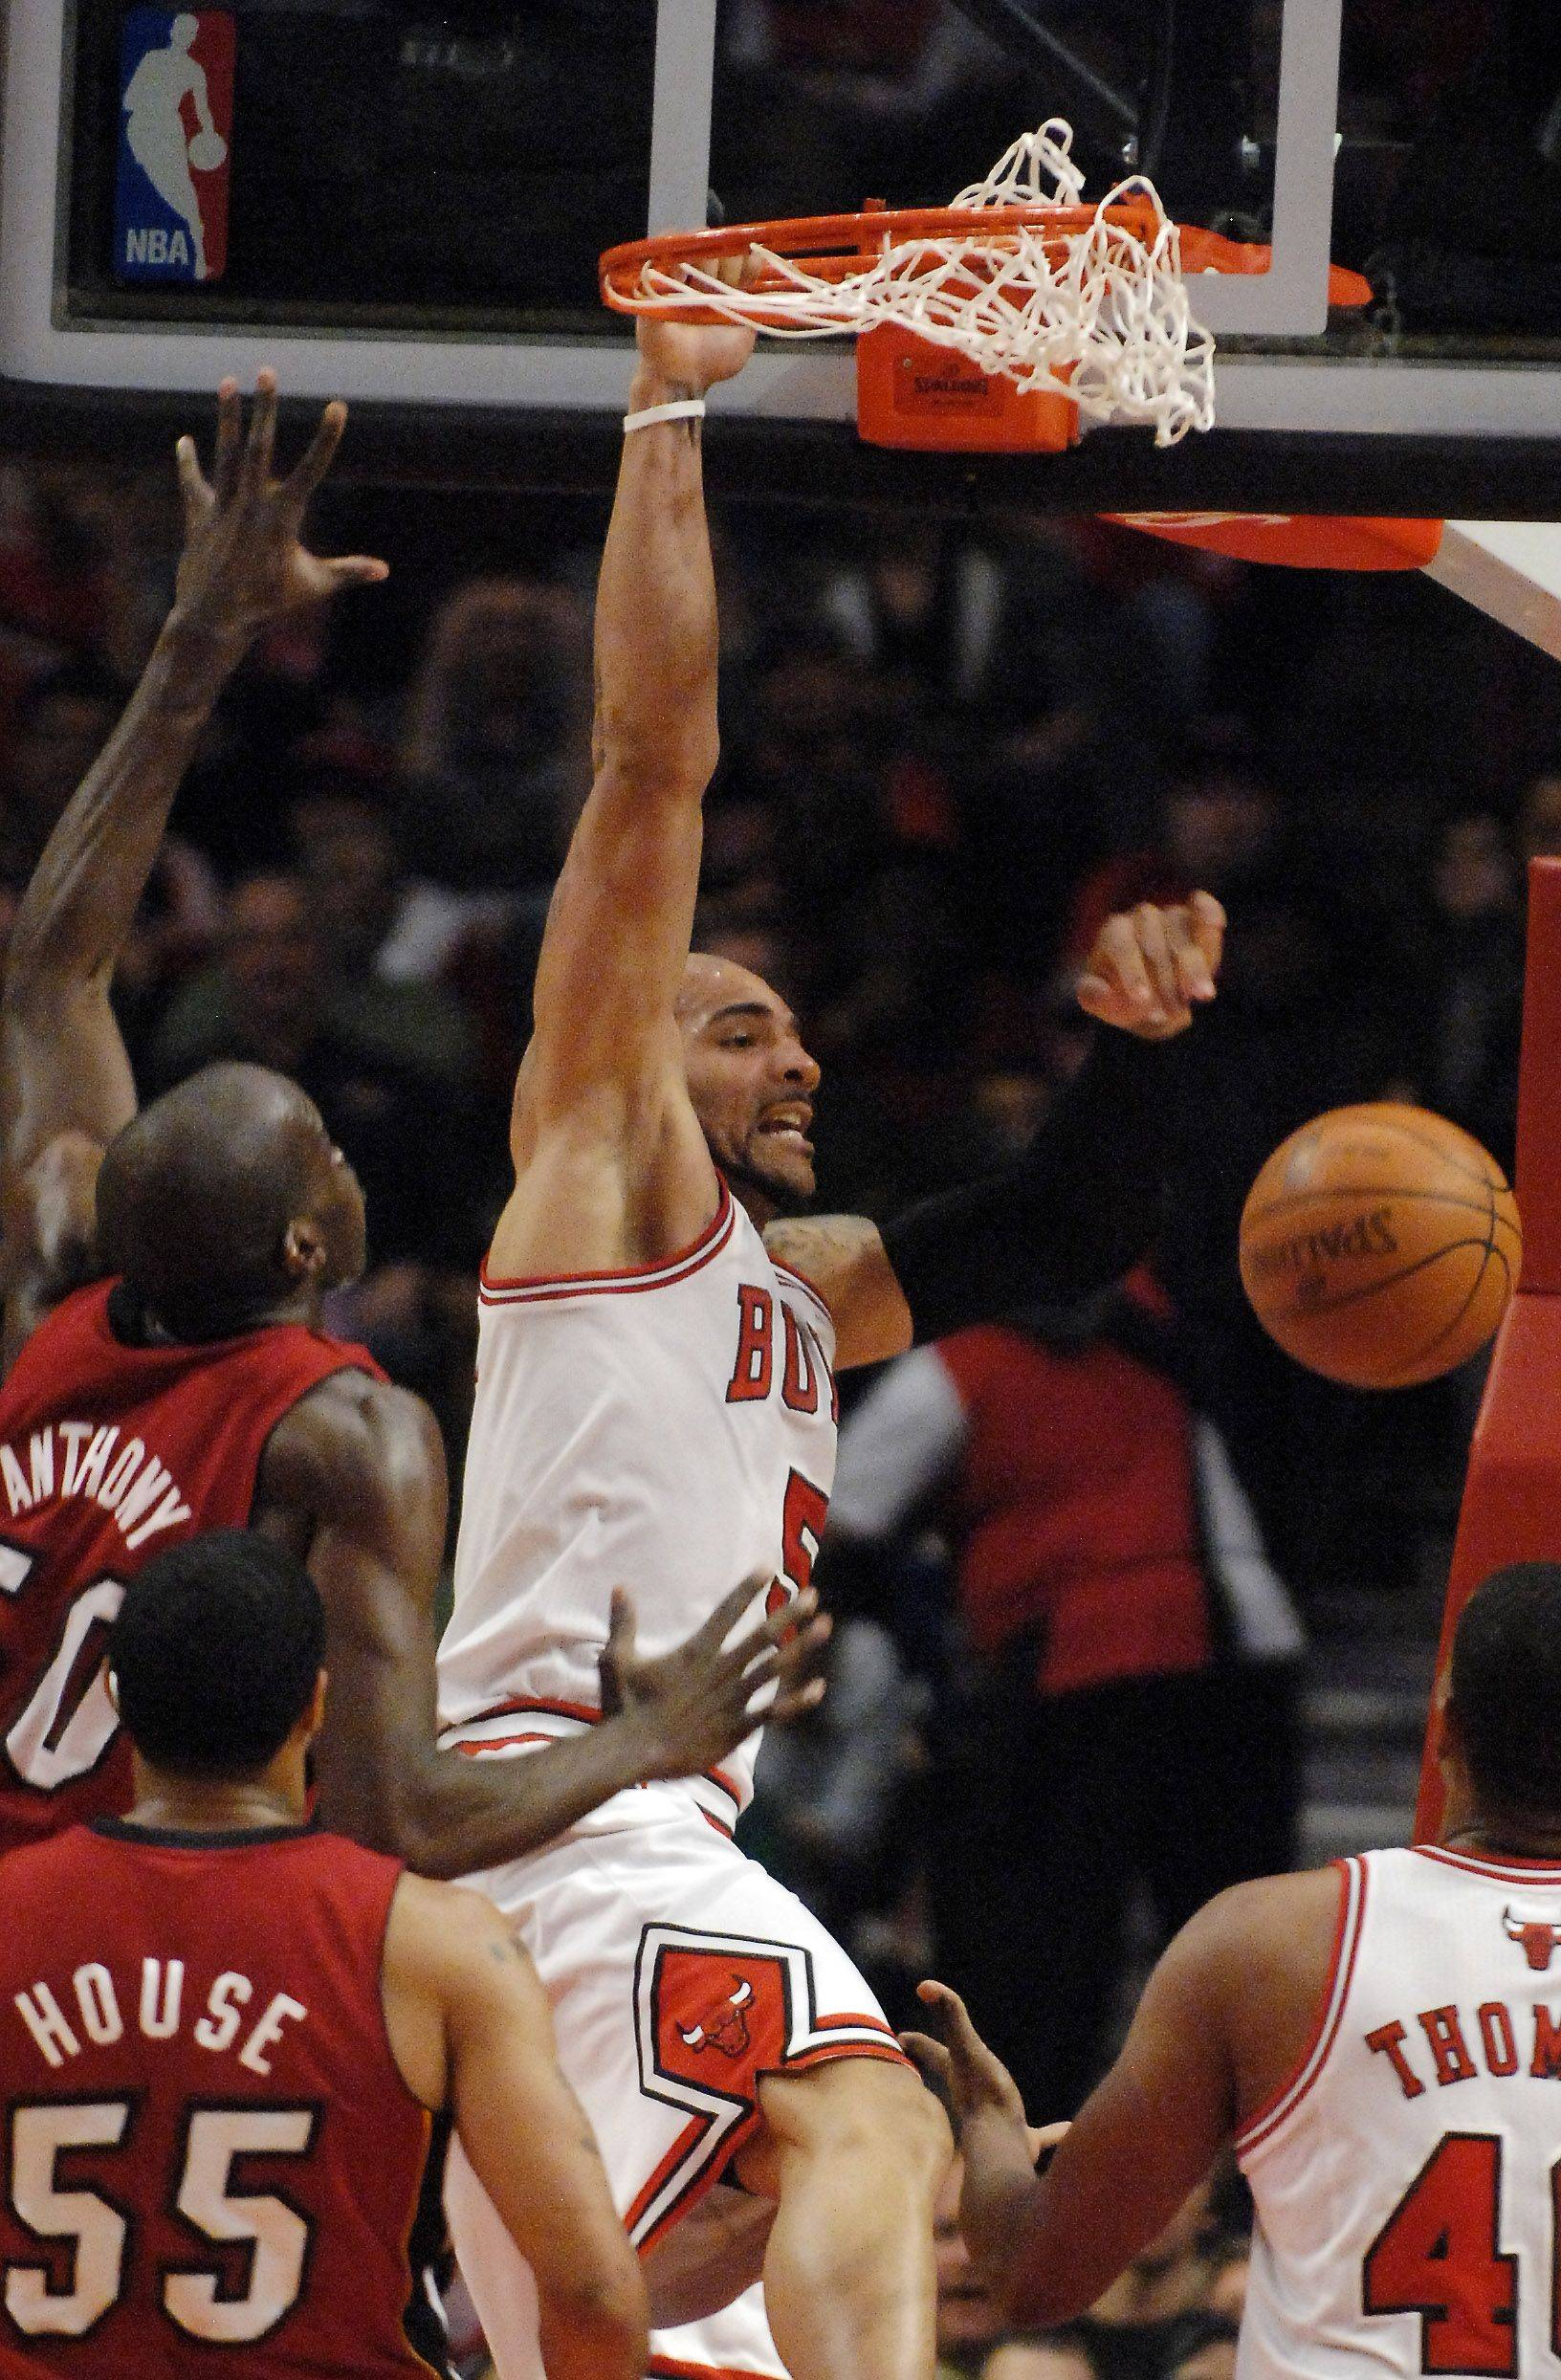 Chicago Bulls power forward Carlos Boozer dunks against Miami during Saturday's game at the United Center in Chicago.